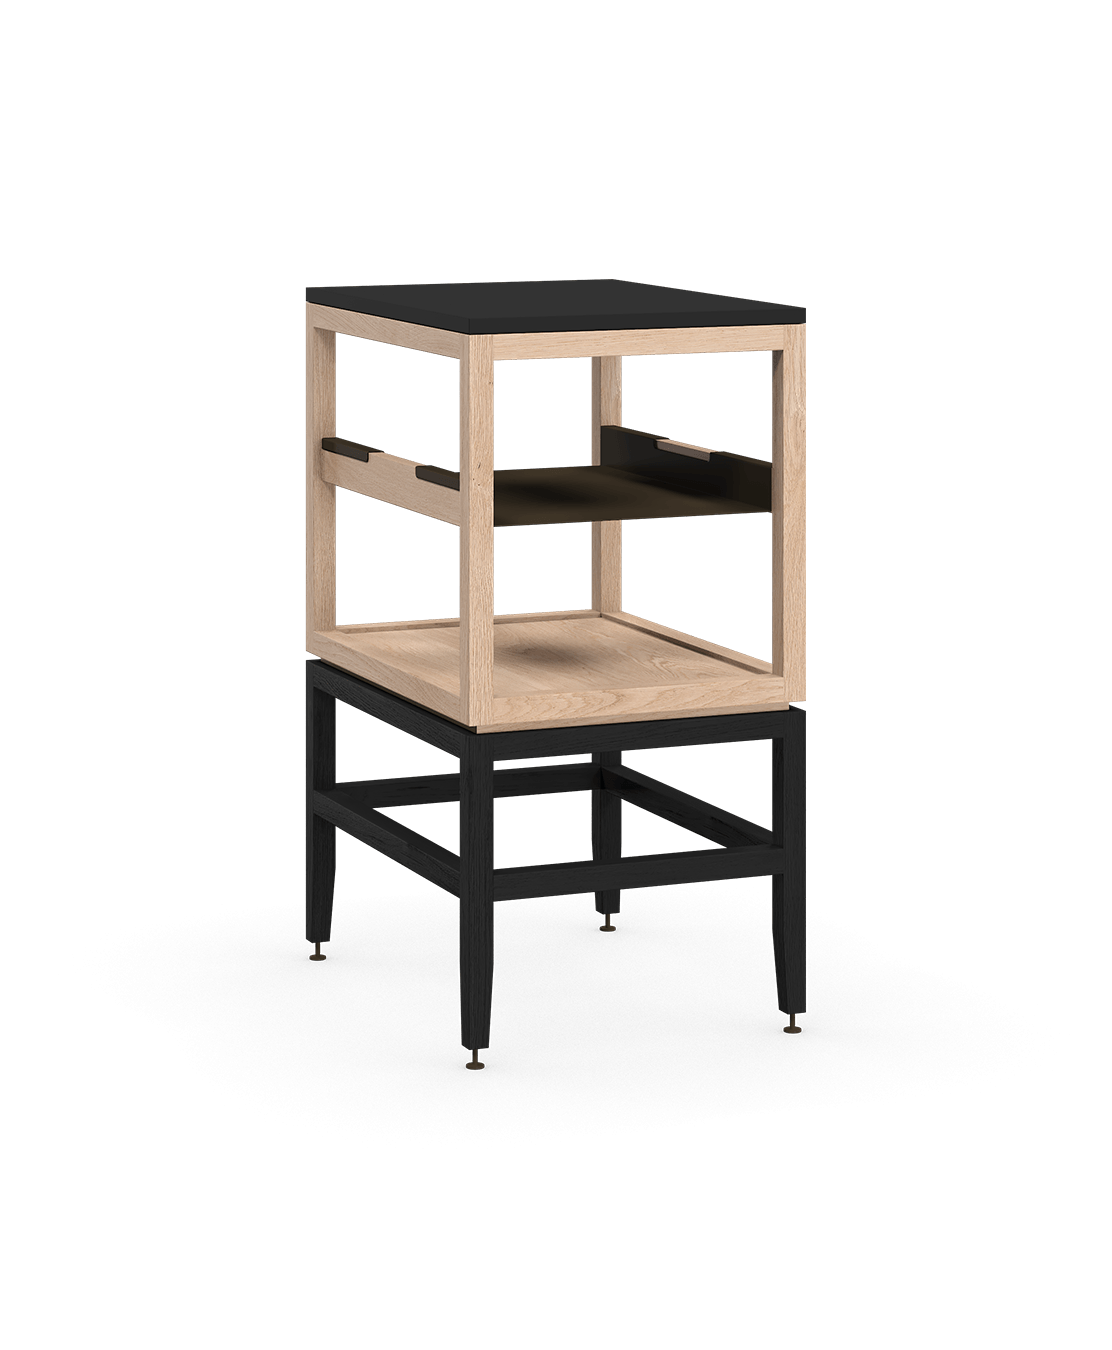 coquo volitare midnight black stained white oak solid wood modular cube 1 shelf storage open cabinet 18 inch C2-N-1824-0011-NA-BK